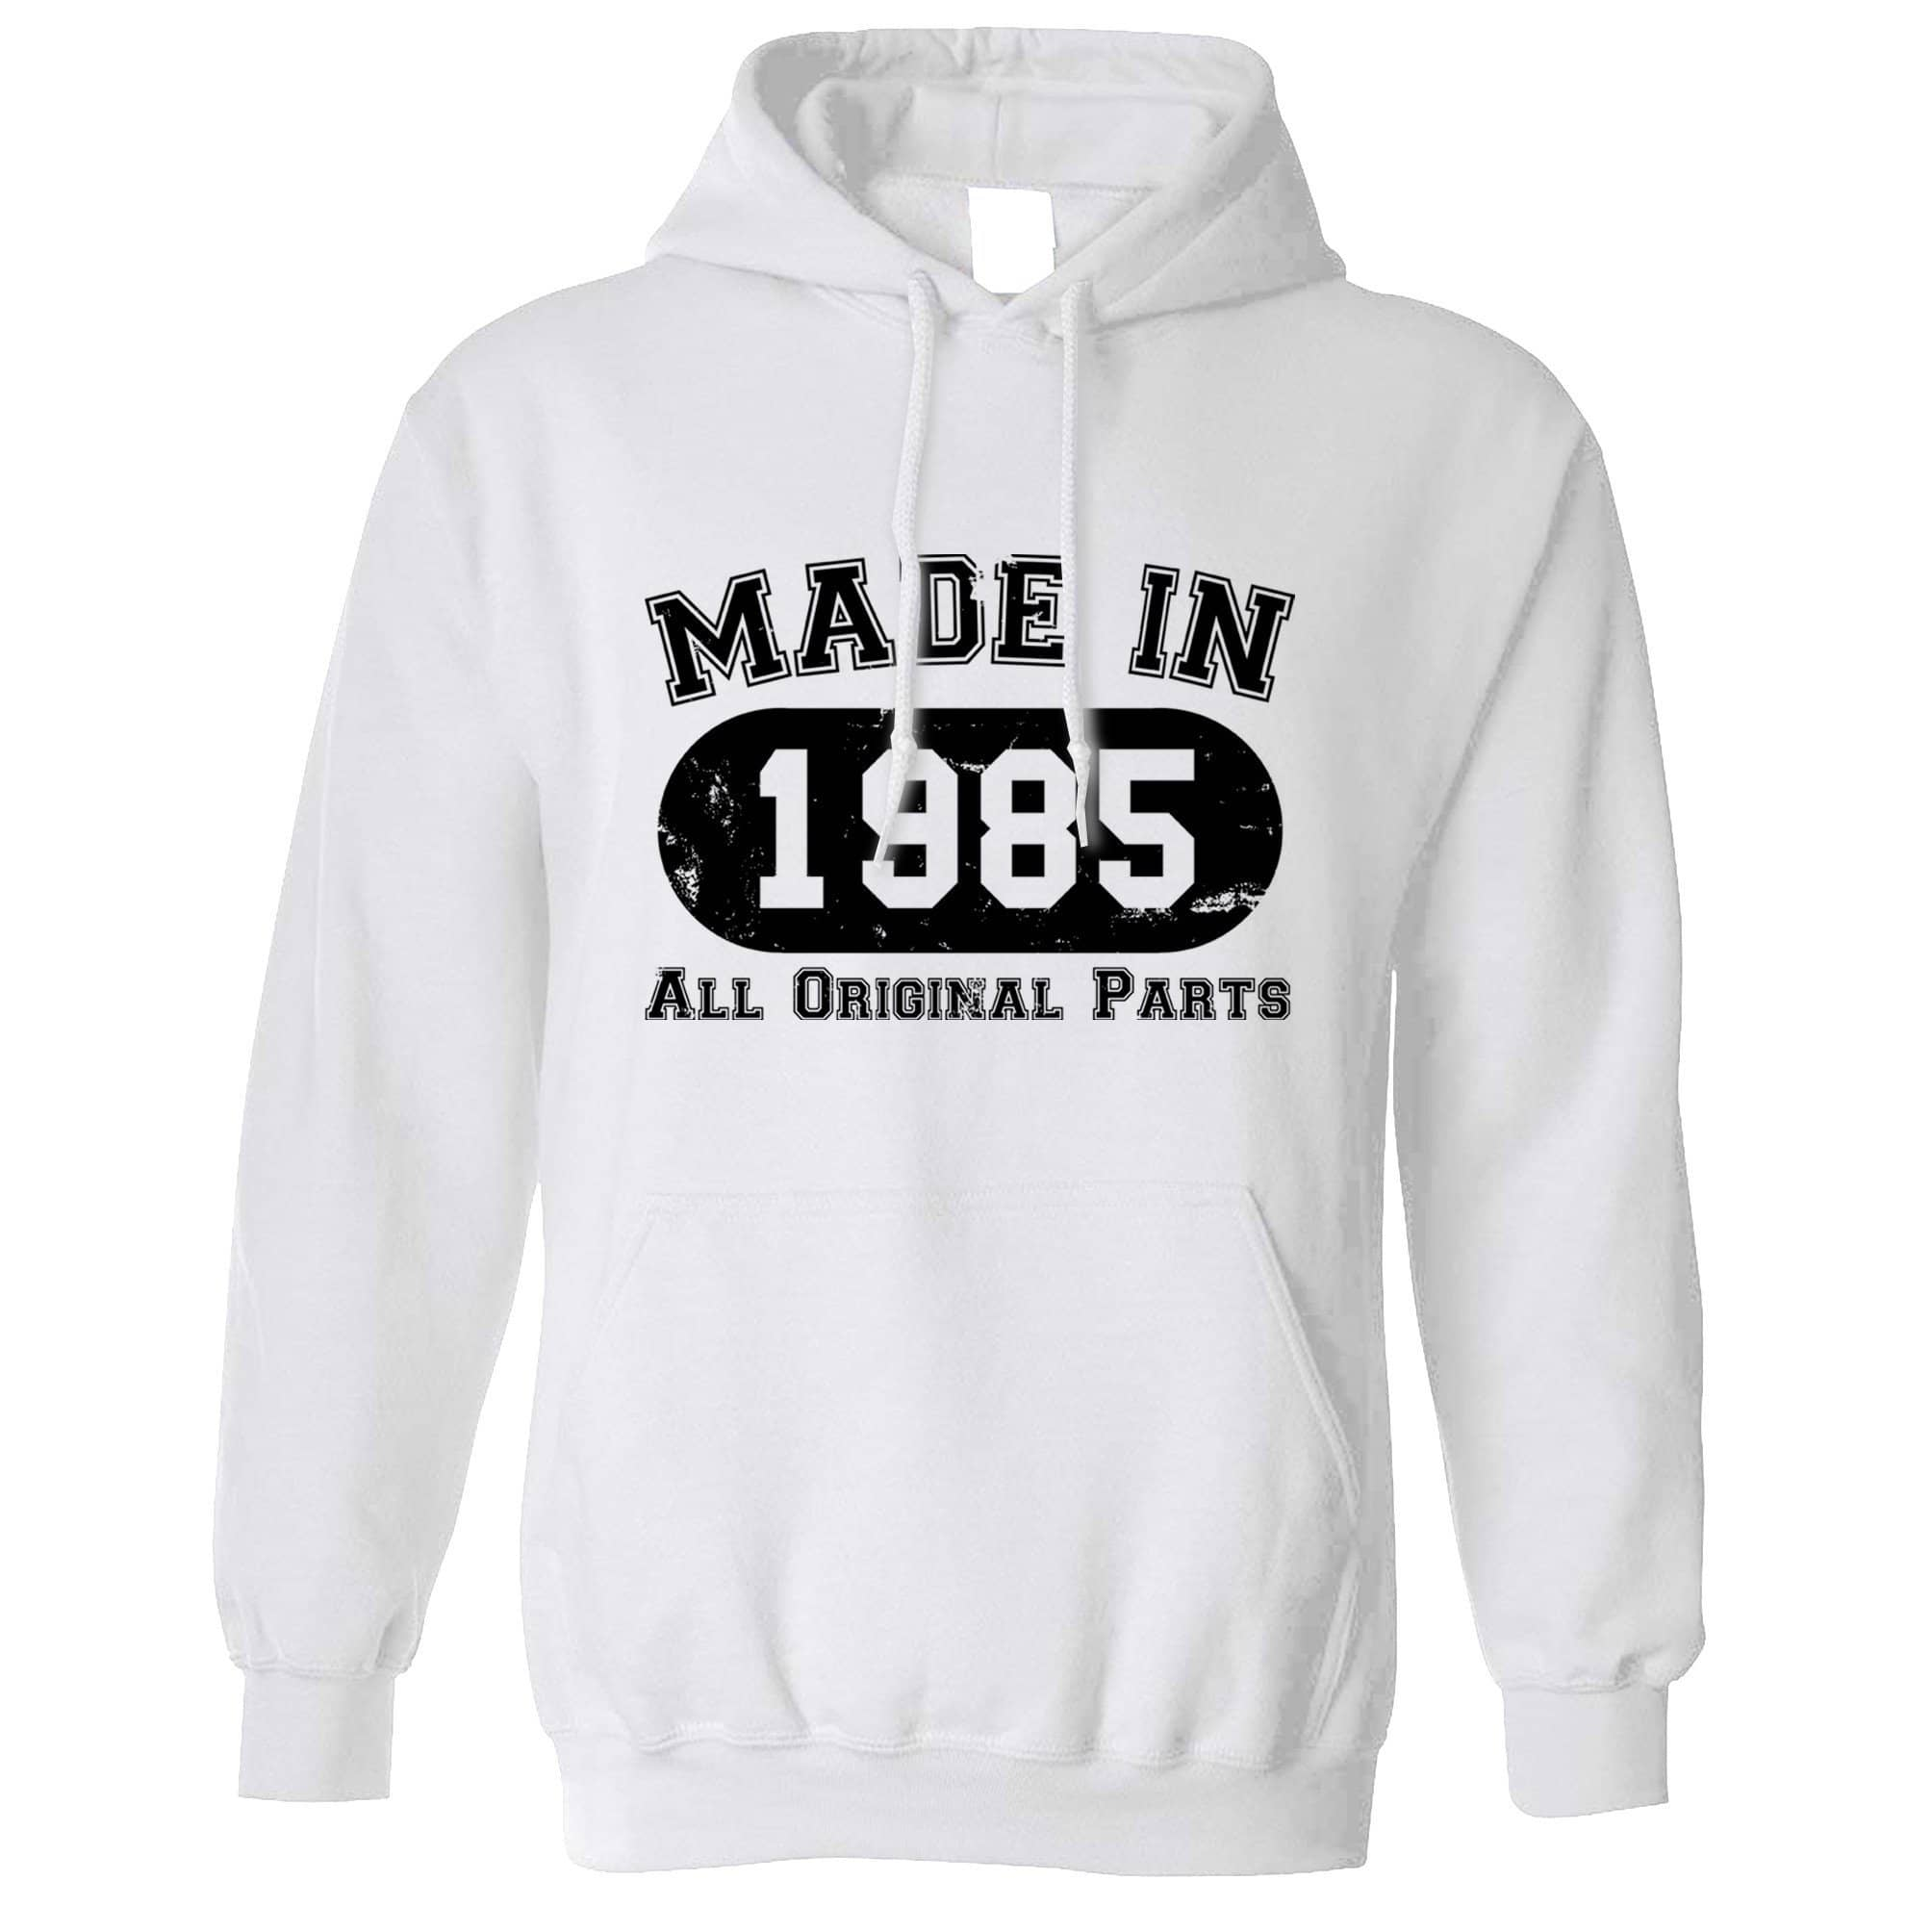 Made in 1985 All Original Parts Hoodie [Distressed]